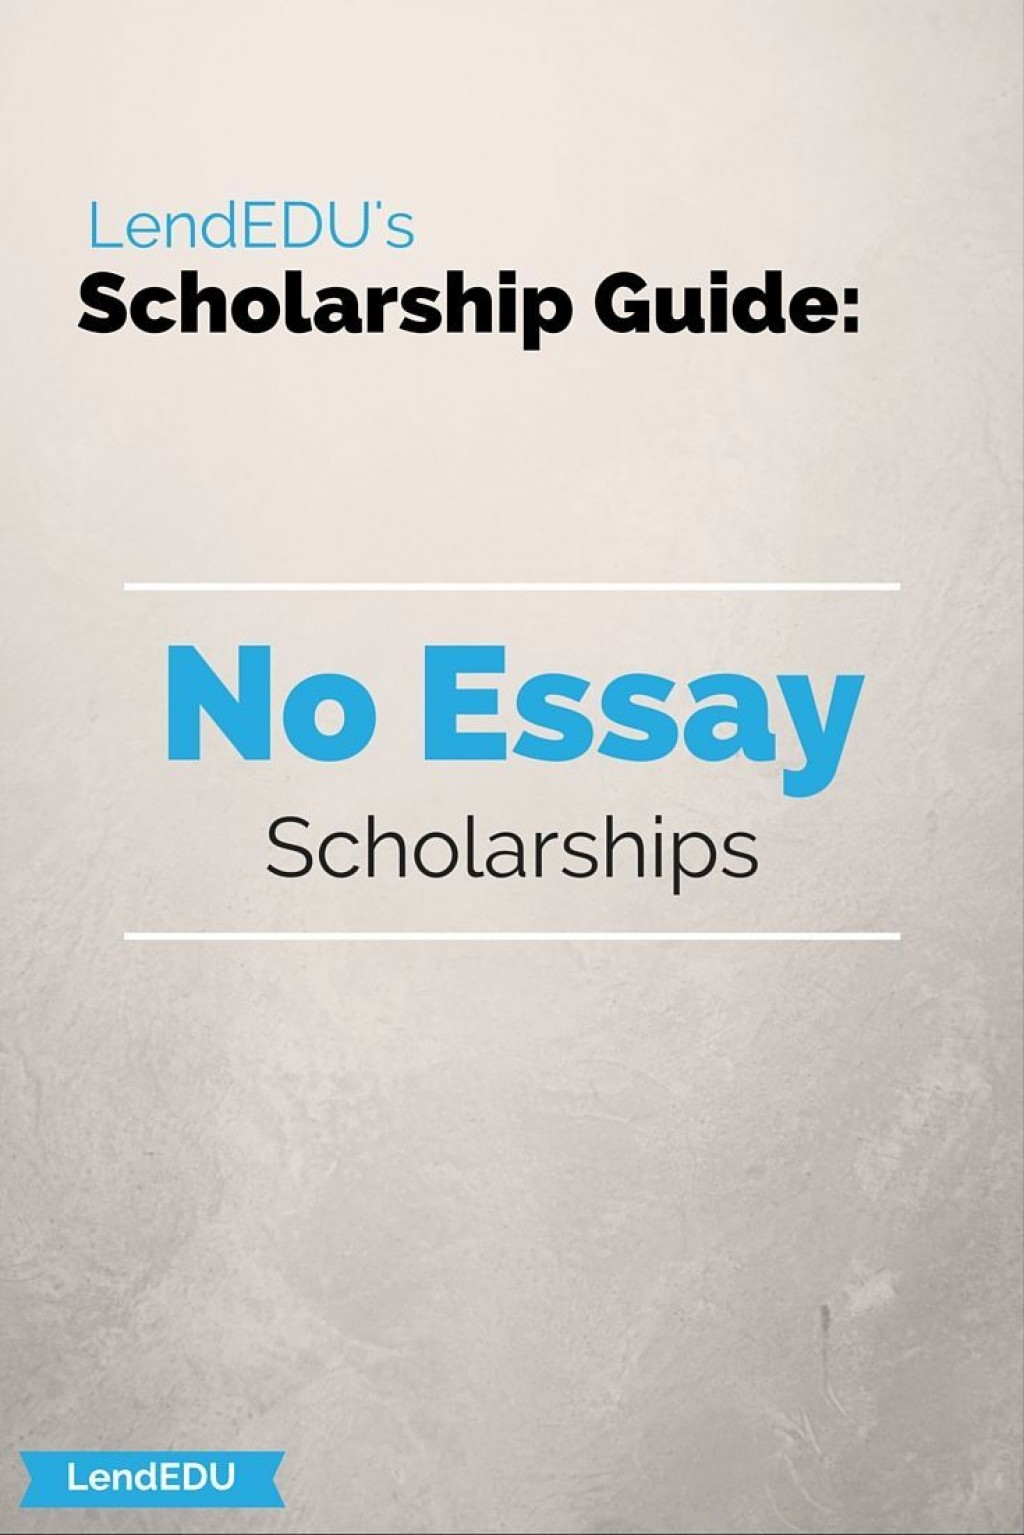 016 Essay Example No Scholarship Wondrous Scholarships For High School Seniors 2019 Large